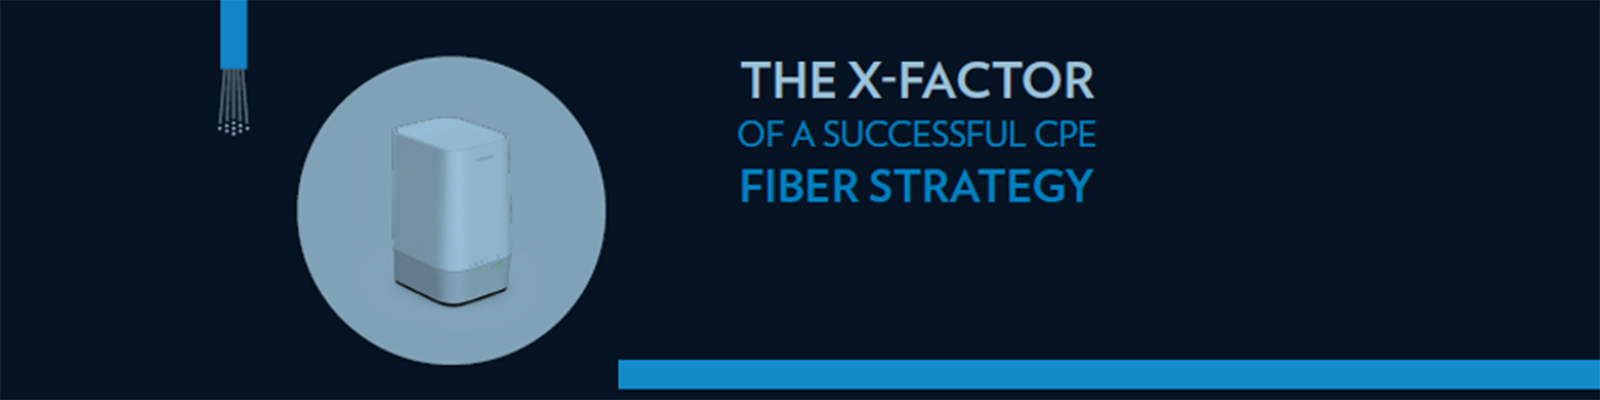 The X-factor of a successful fiber strategy